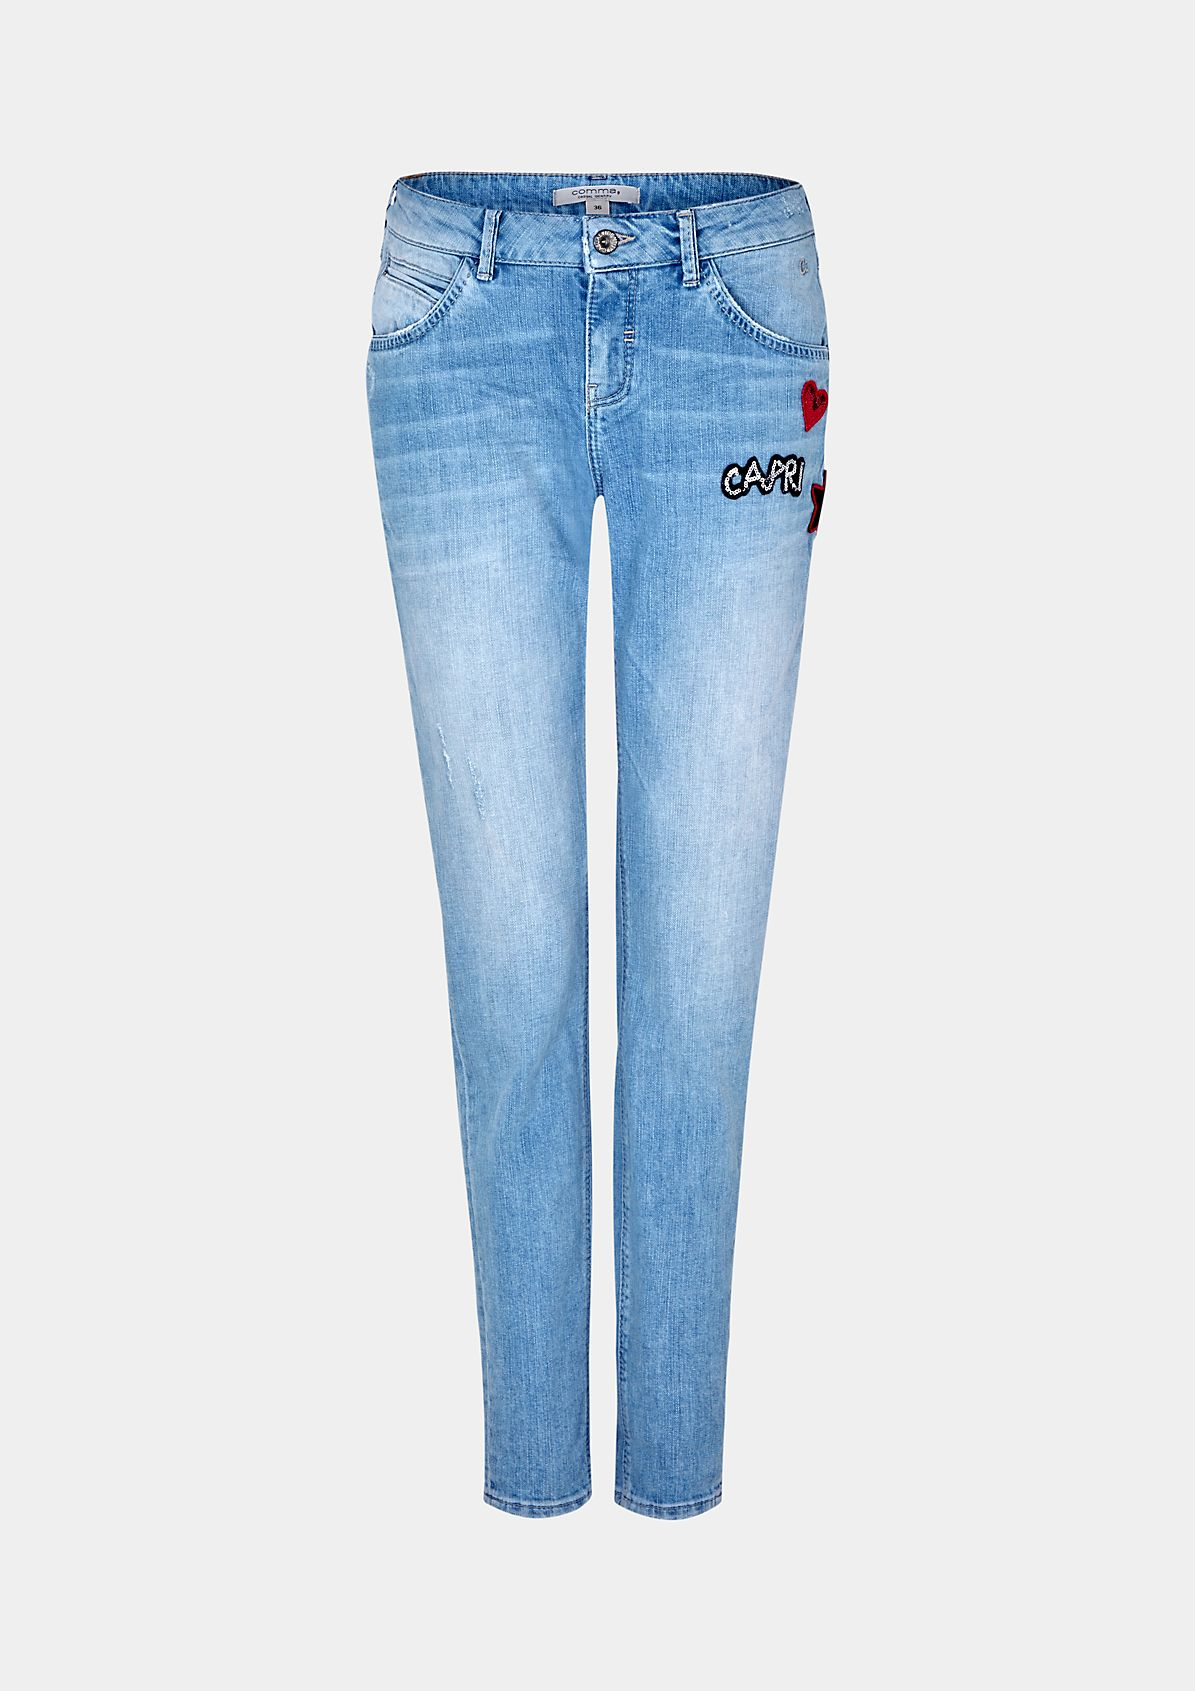 Legere Boyfriend-Jeans mit dekorativen Patches